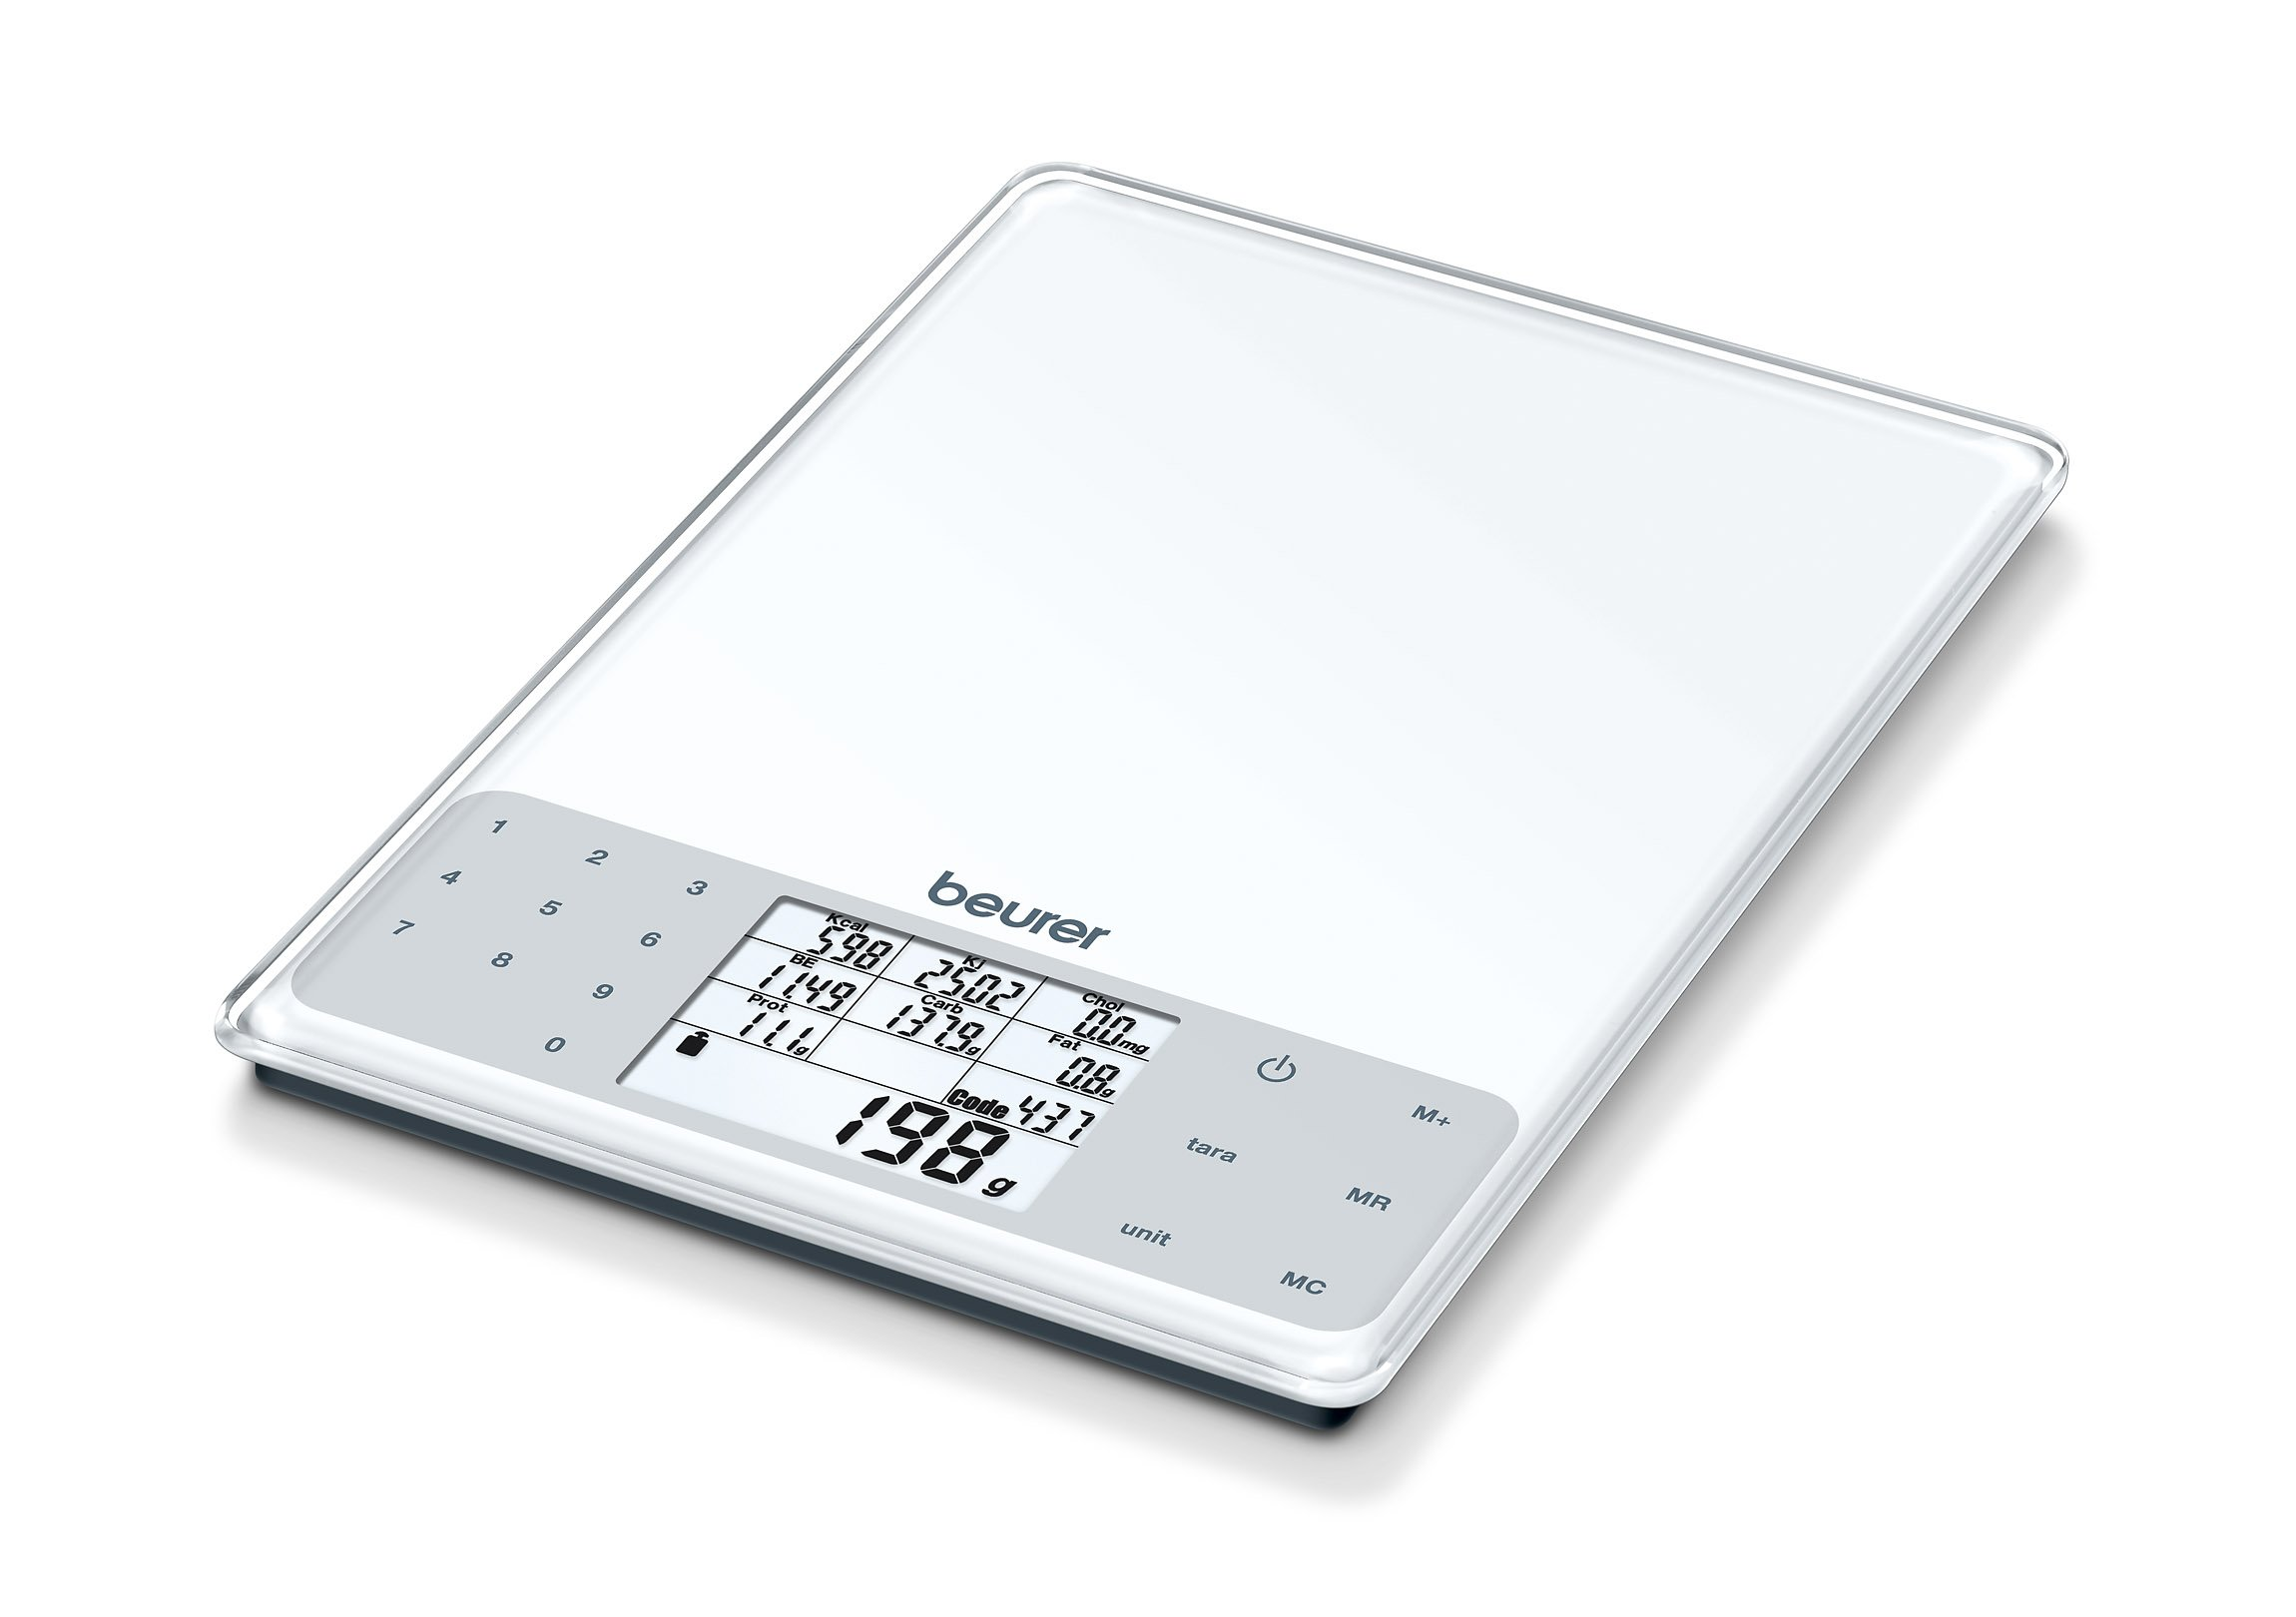 Beurer - DS 61 kitchen scale